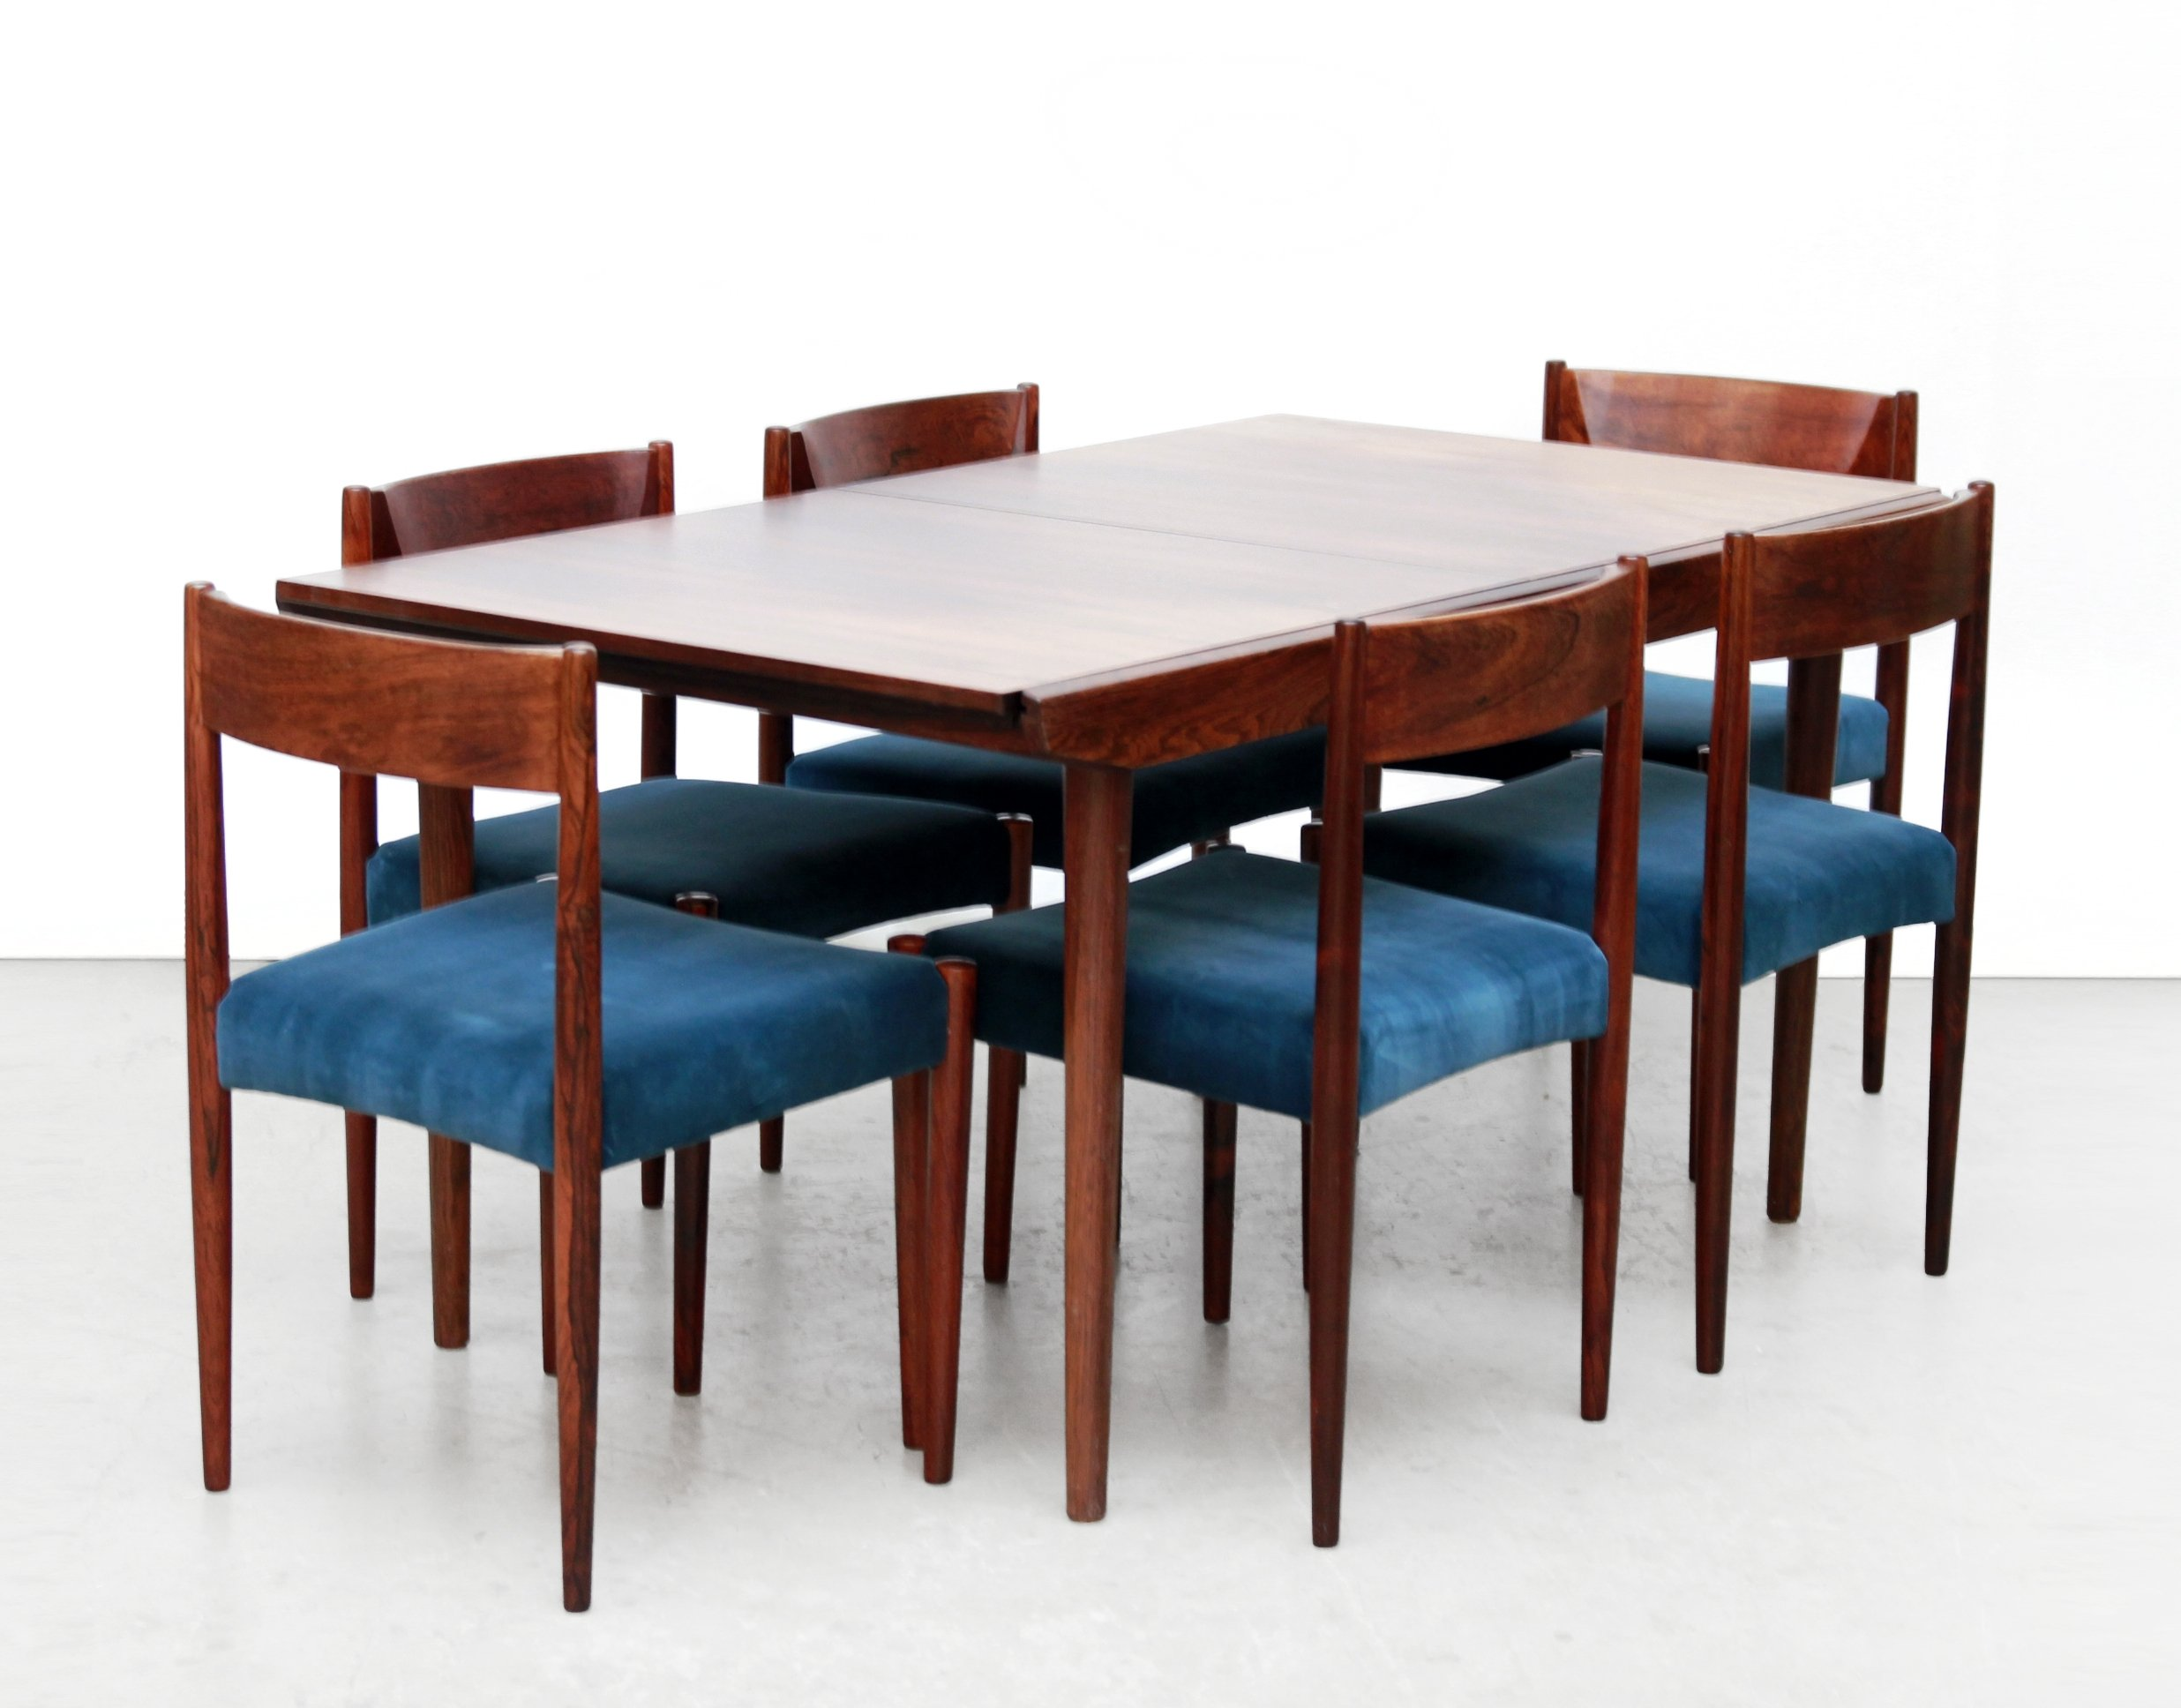 https://img.vntg.com/large/15196658603066/rosewood-dining-room-set-with-6-chairs-and-extendable-dining-room-table.jpg